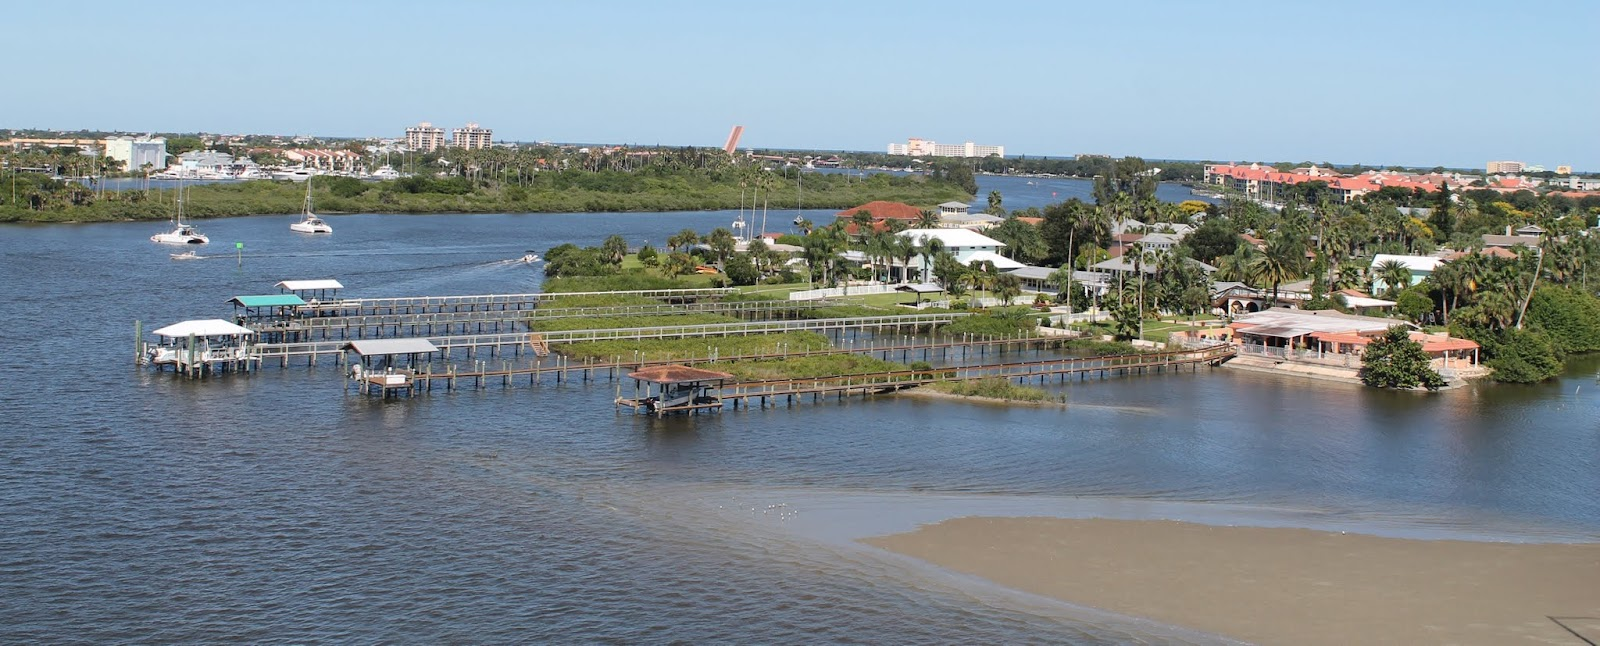 New Smyrna Beach a orillas del Halifax River, sector de las islas barrera